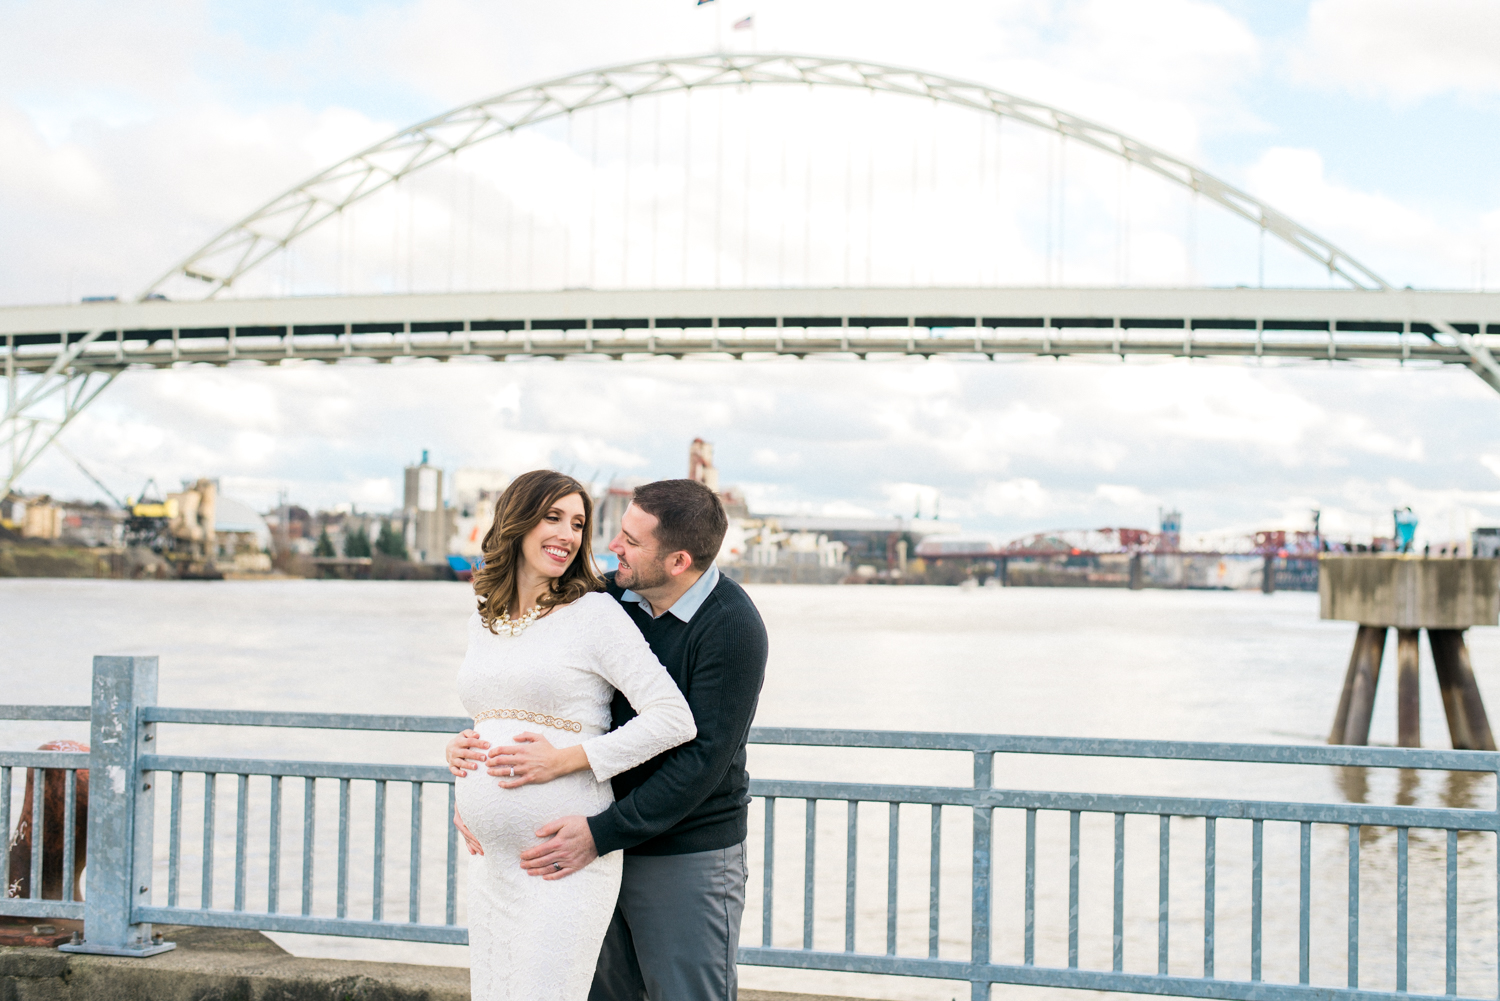 portland-maternity-photographer-fremont-bridge-shelley-marie-photo-4